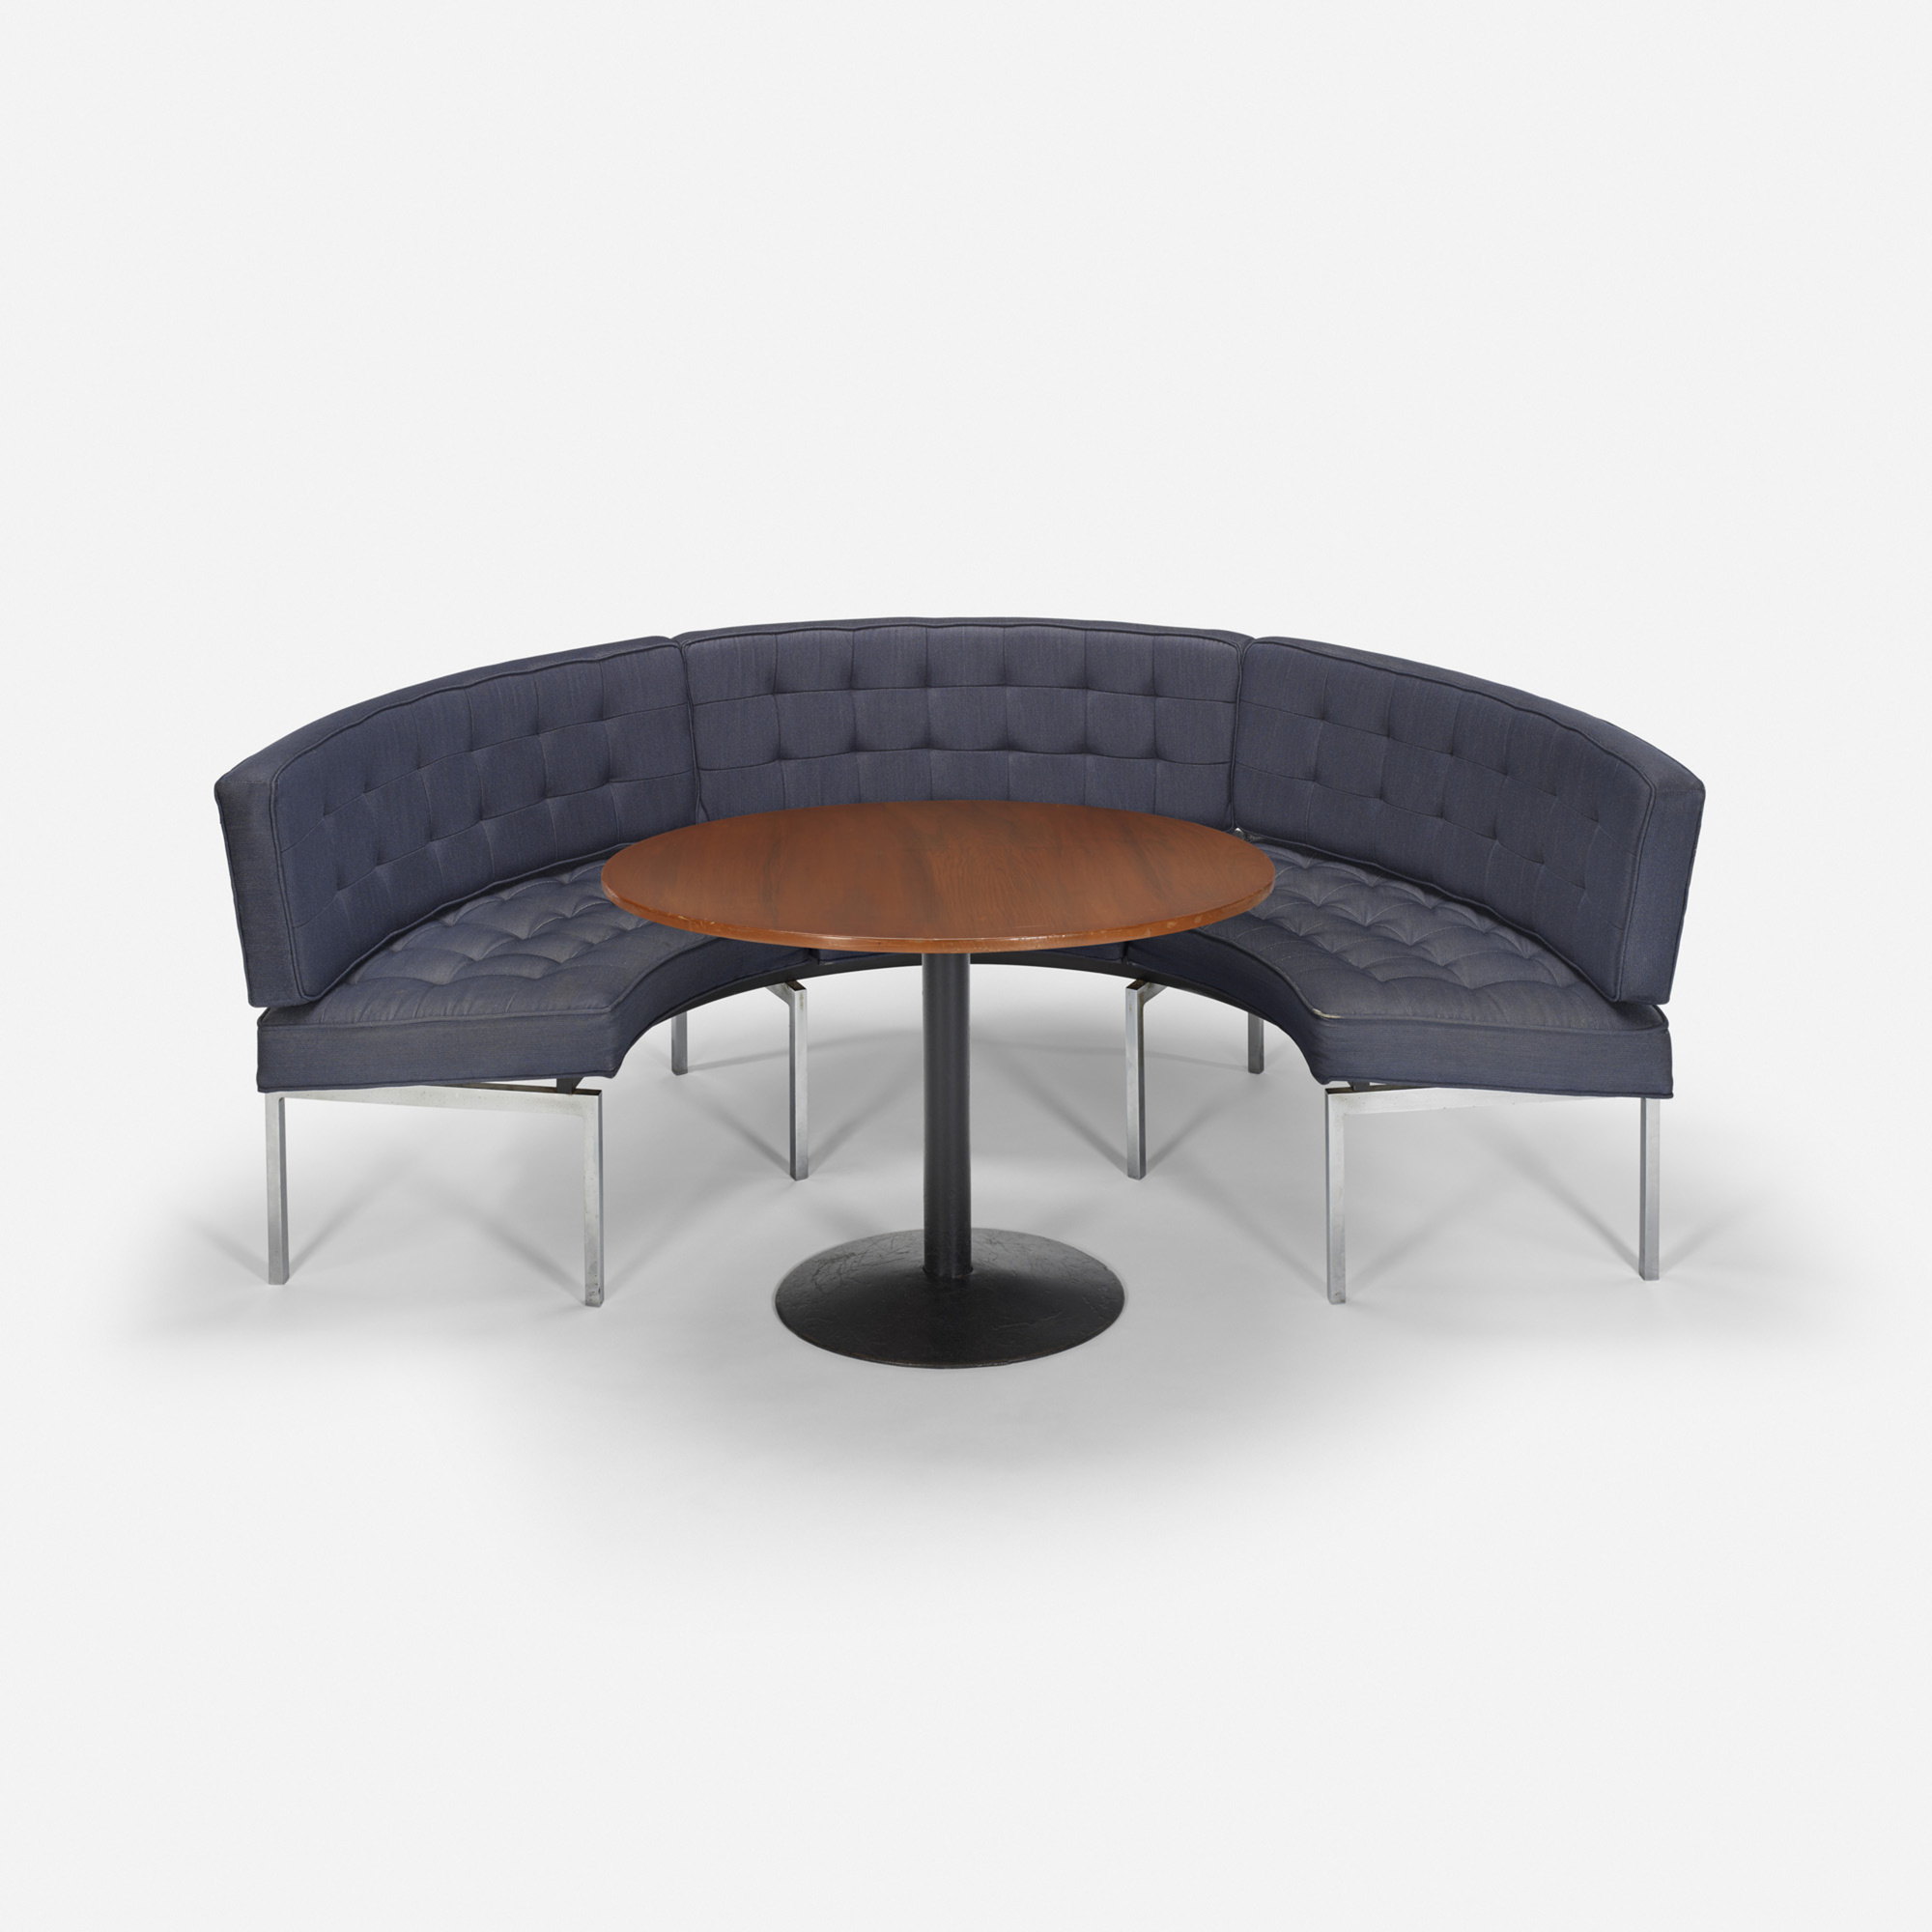 222: Philip Johnson Associates / Curved banquette and table 35 from the Grill Room (1 of 1)